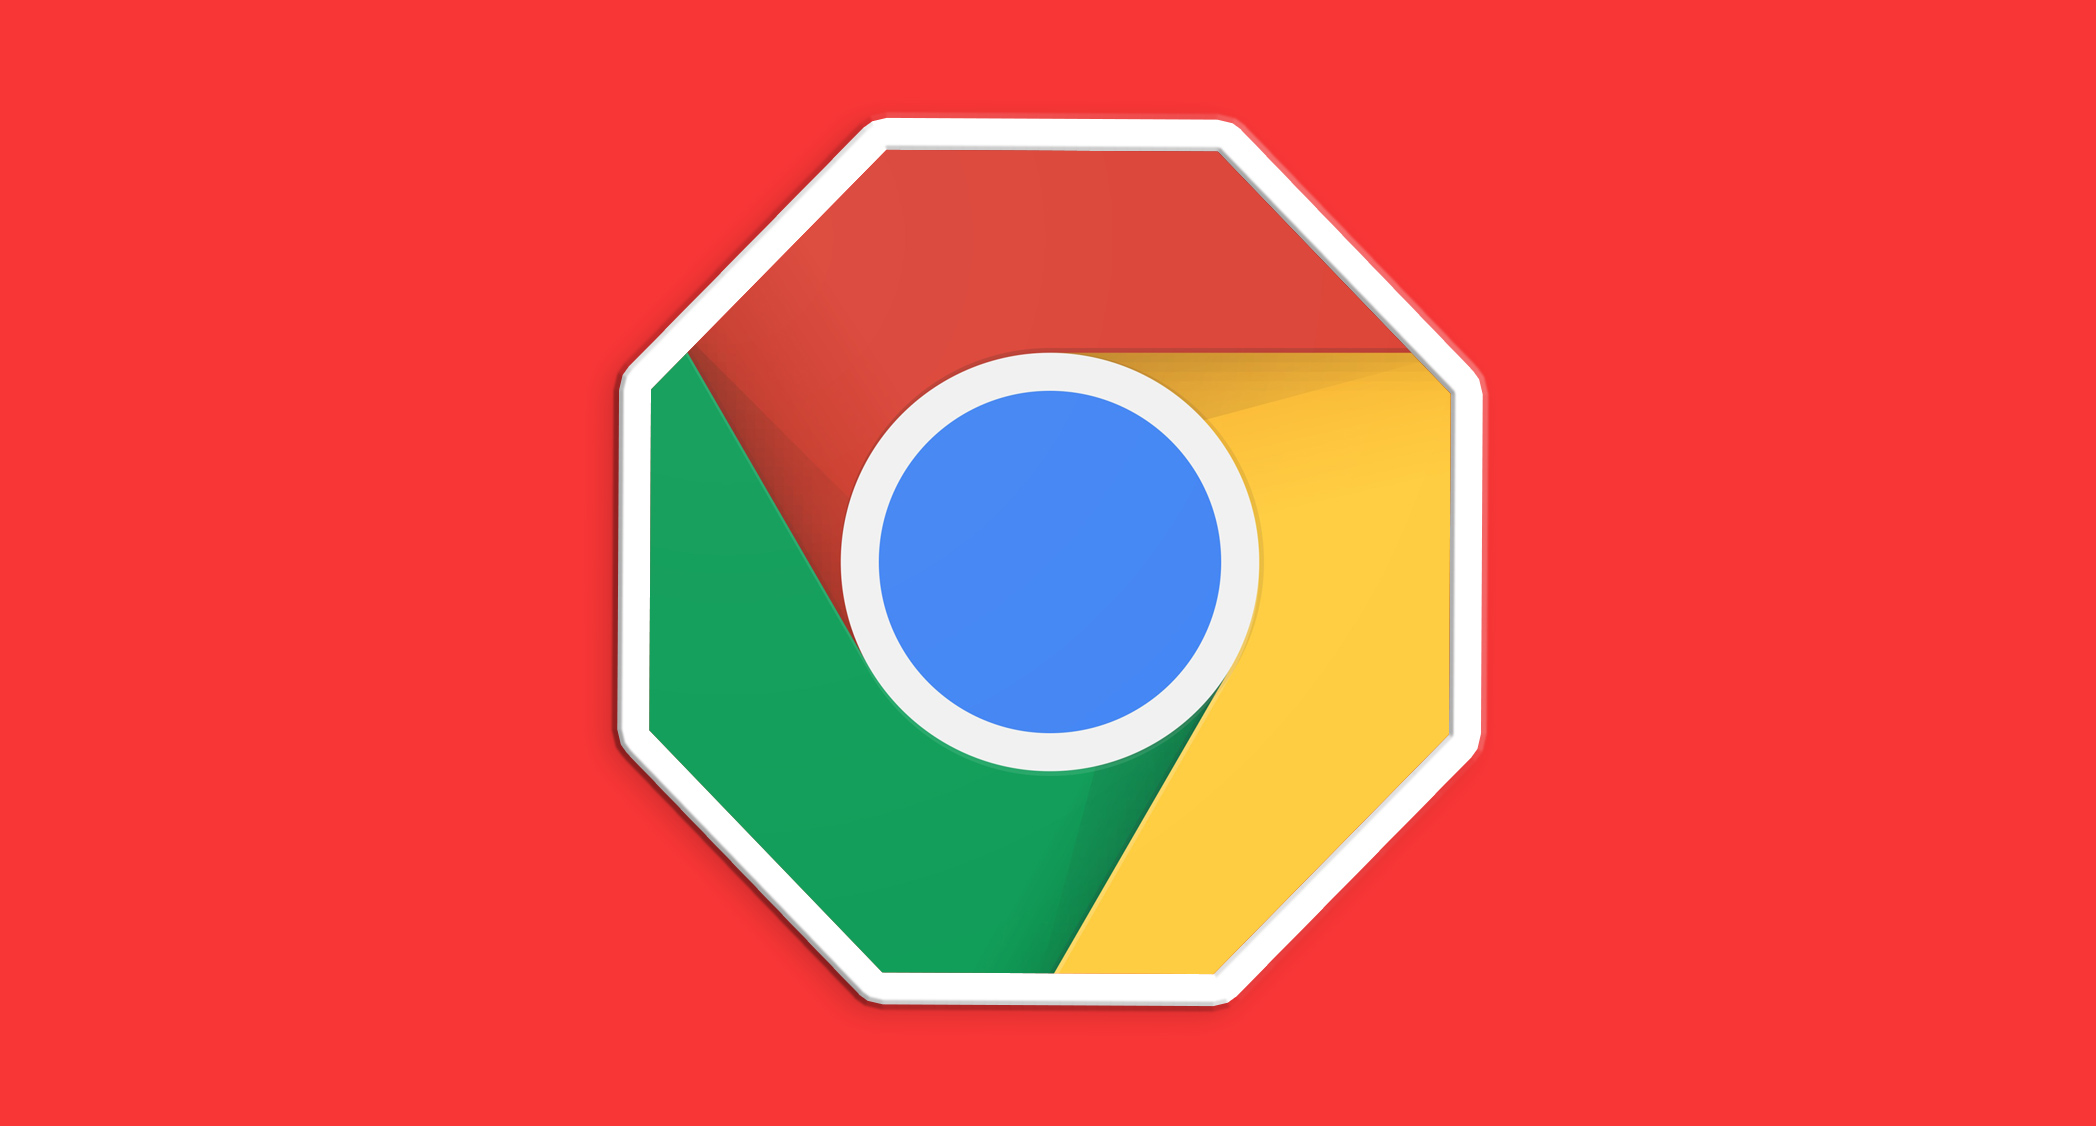 Chrome's ad blocker goes live on February 15 | Ars Technica